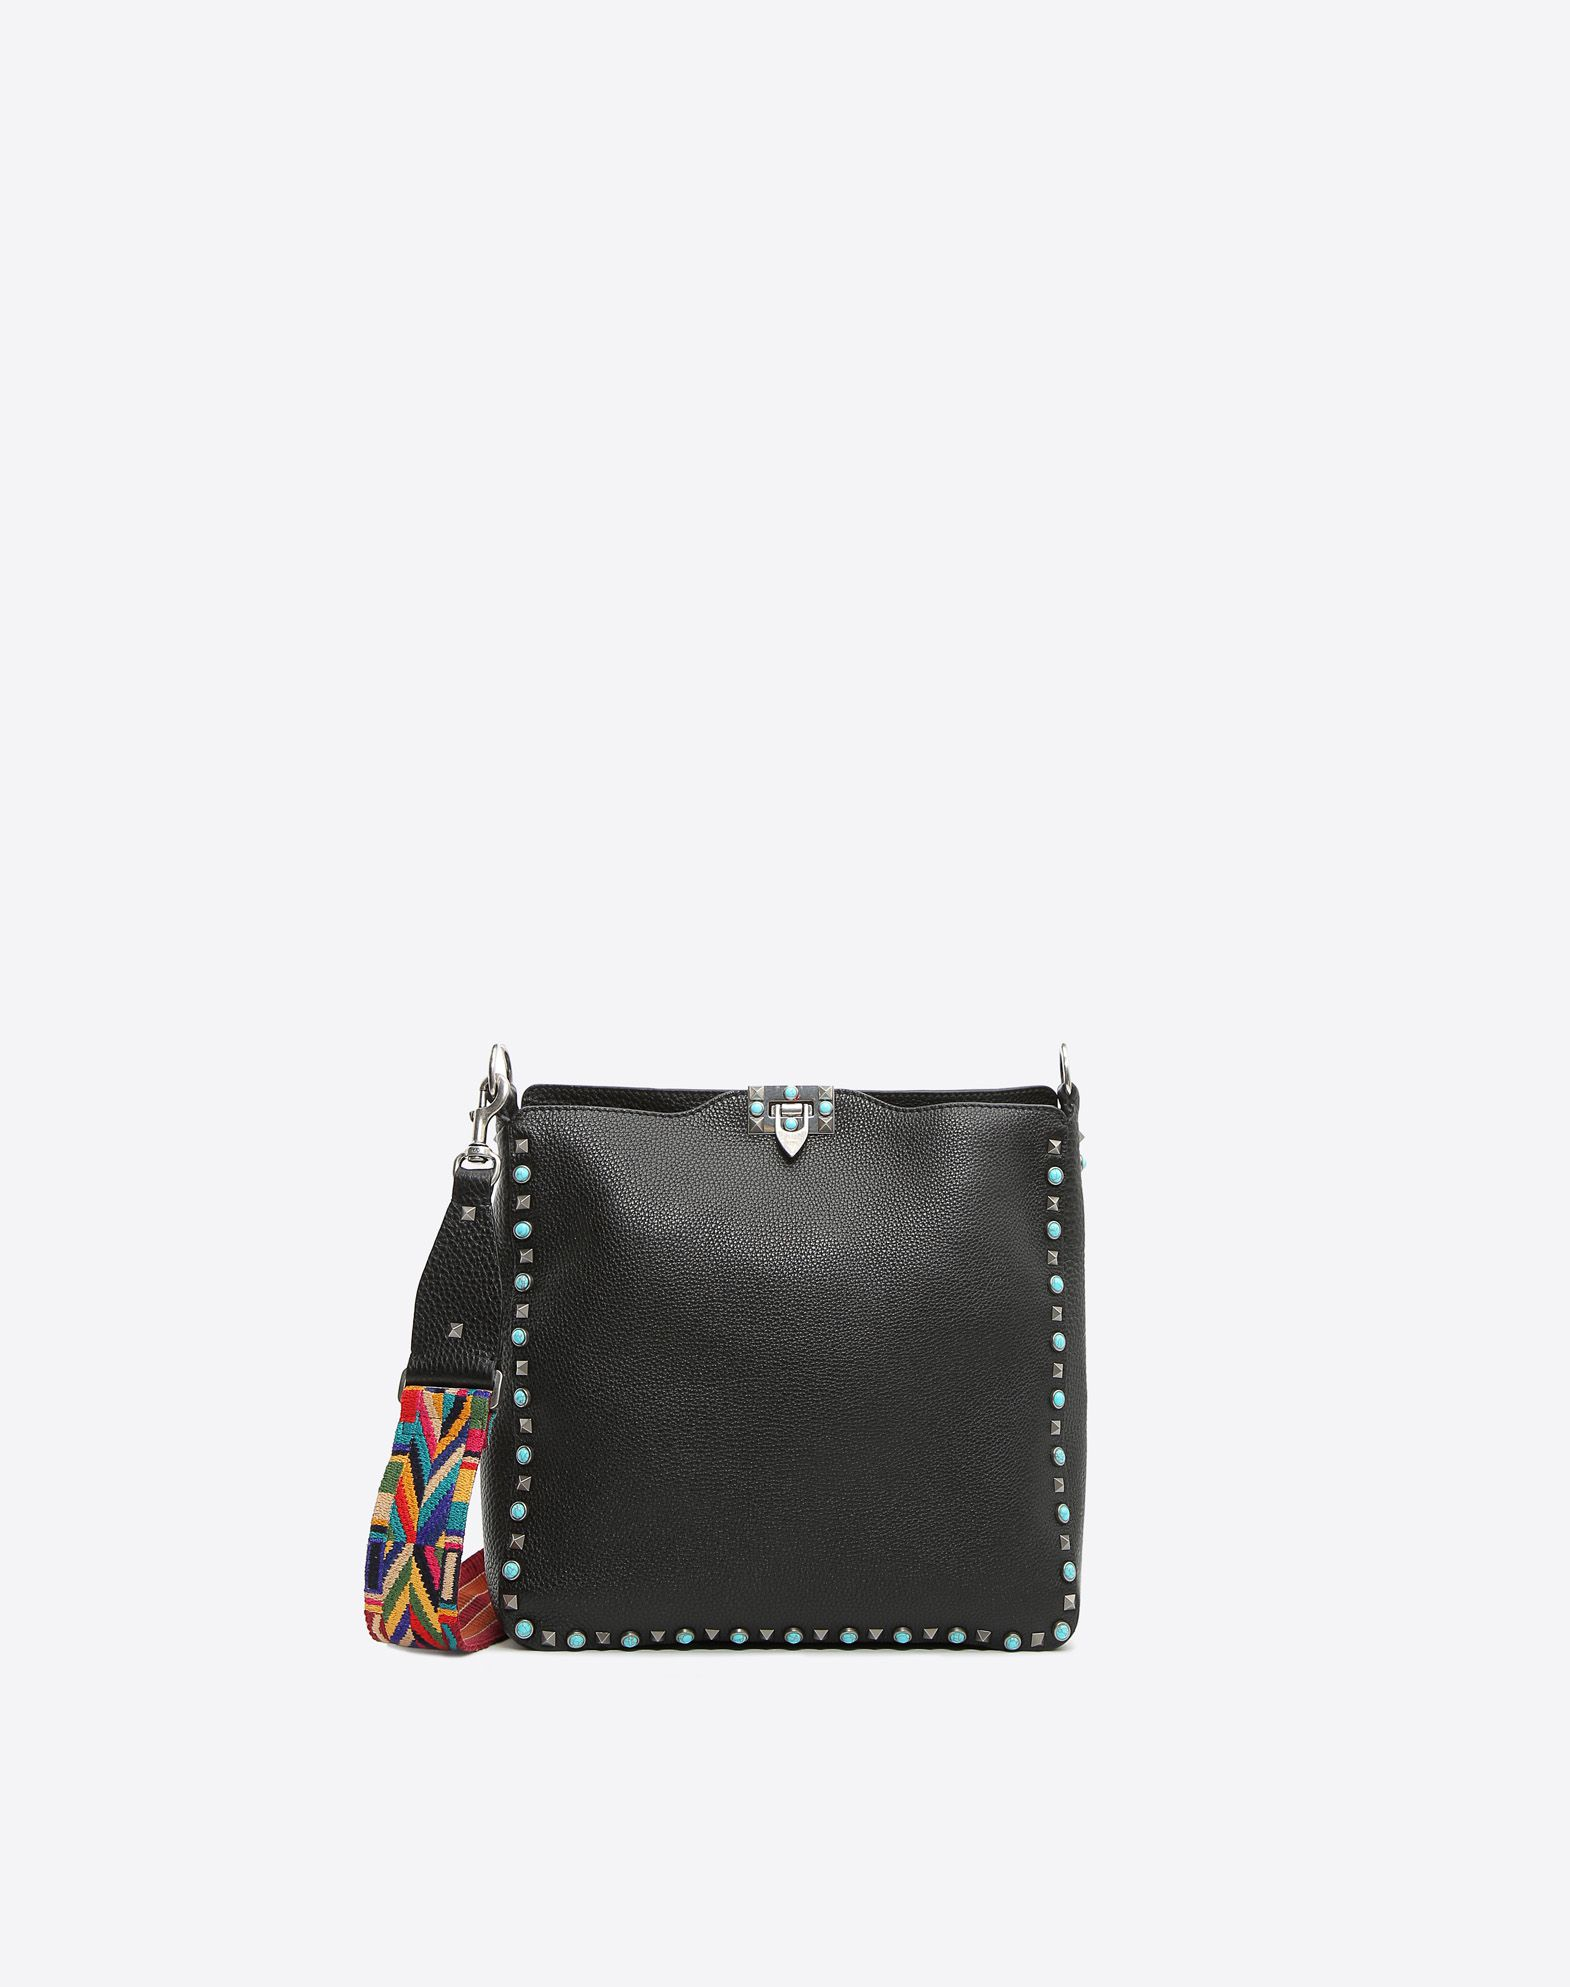 VALENTINO Logo Studs Solid color  45330613an